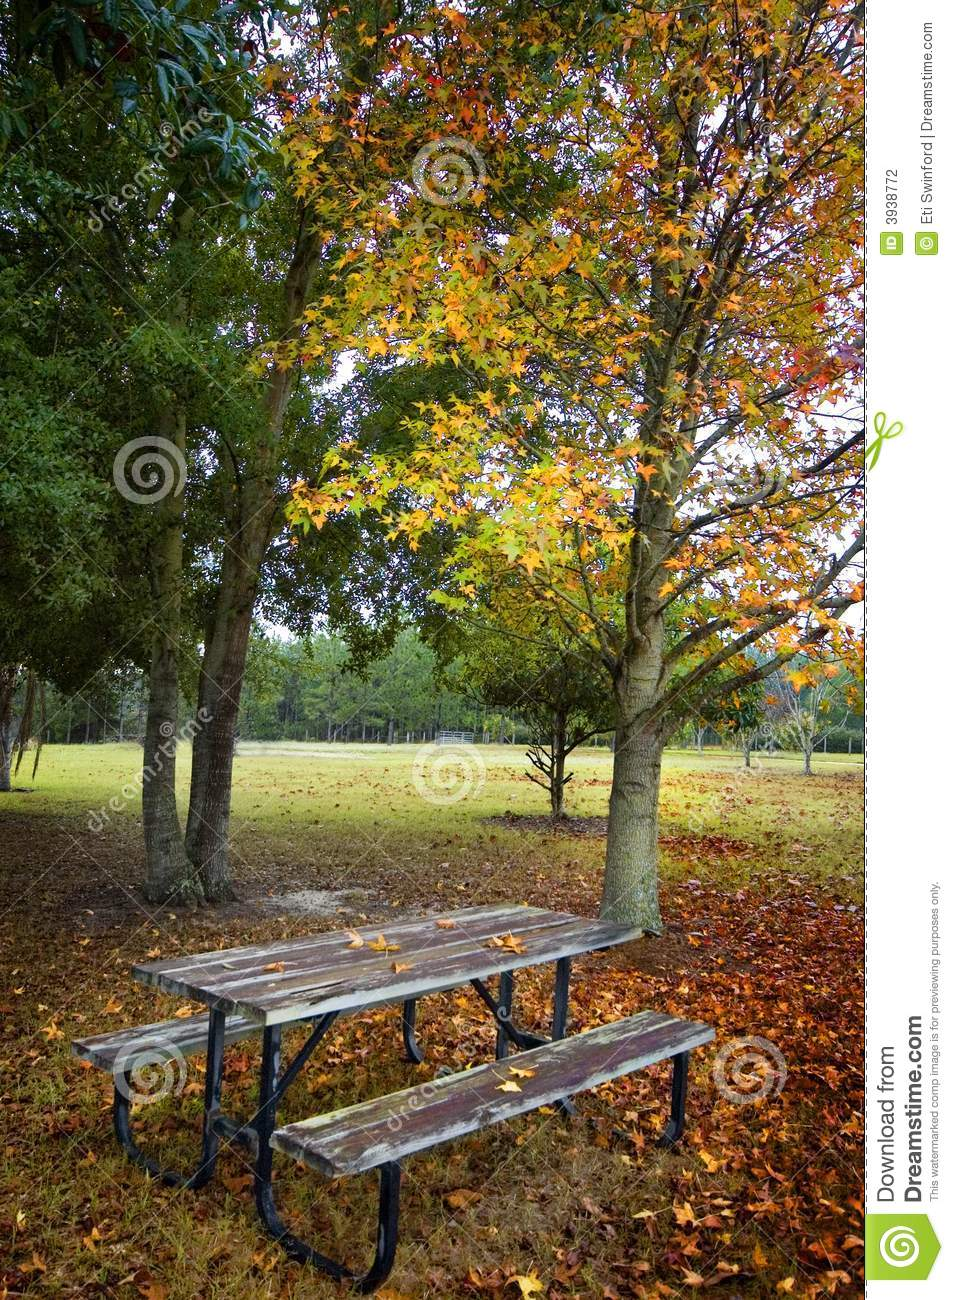 Picnic Table Under Tree Stock Photography Image 3938772